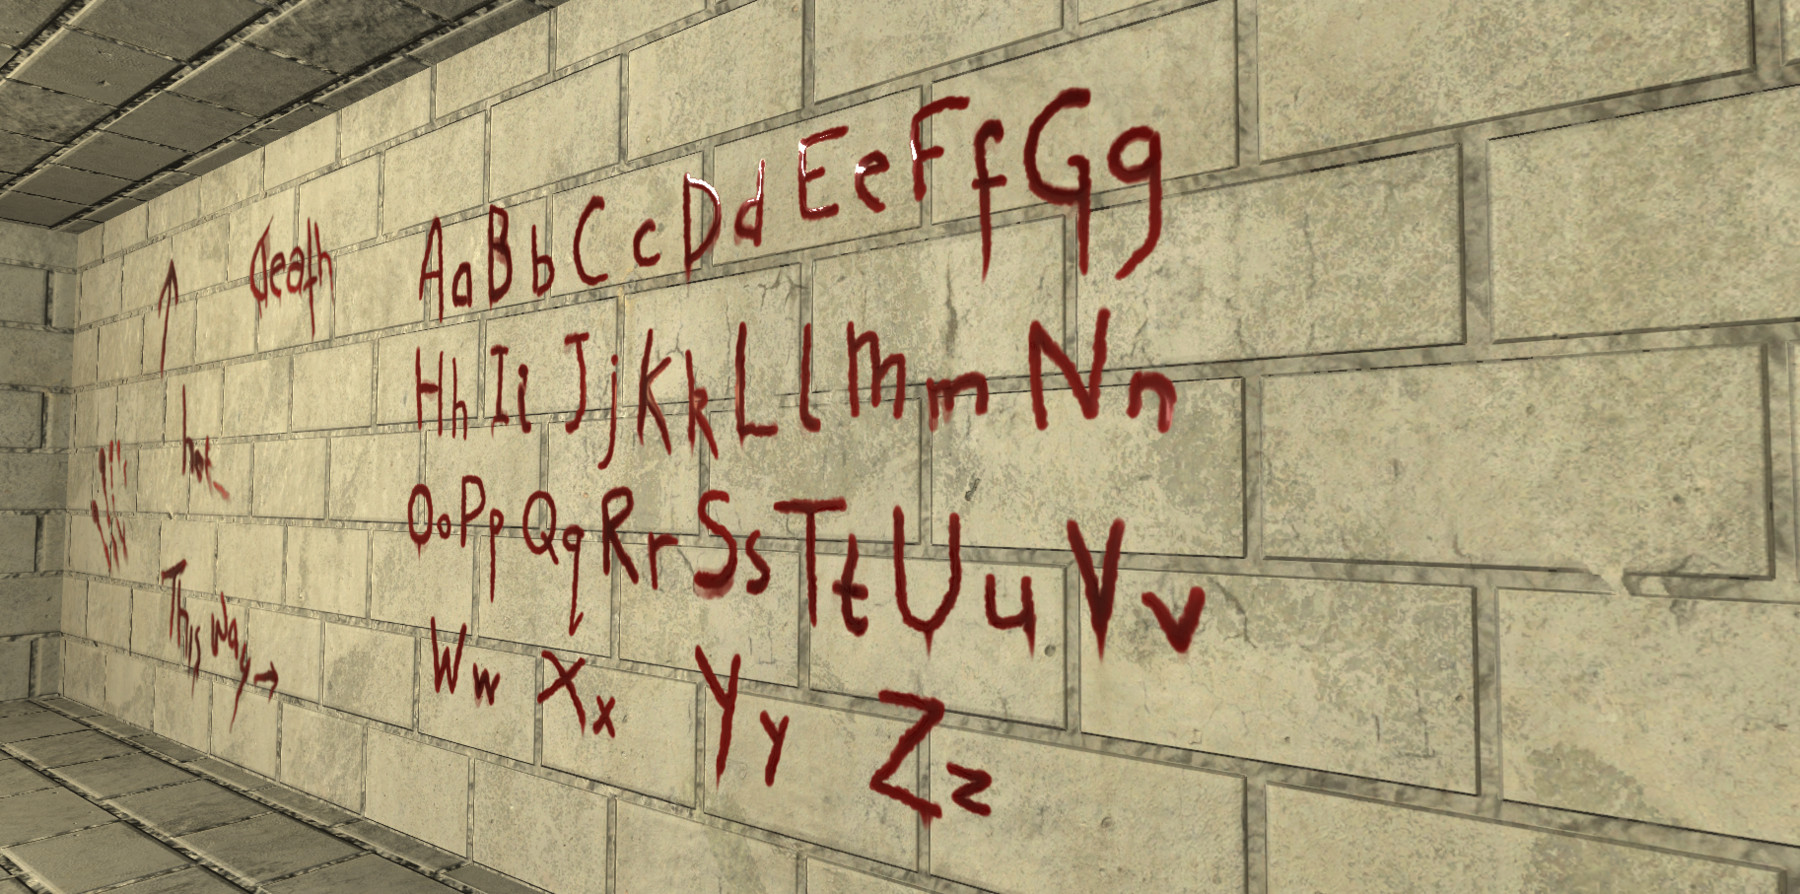 Artstation Blood Decals Textures And Blood Text Unity Srp Urp And Hdrp Versions Game Assets Textures.com is a website that offers digital pictures of all sorts of materials. blood decals textures and blood text unity srp urp and hdrp versions